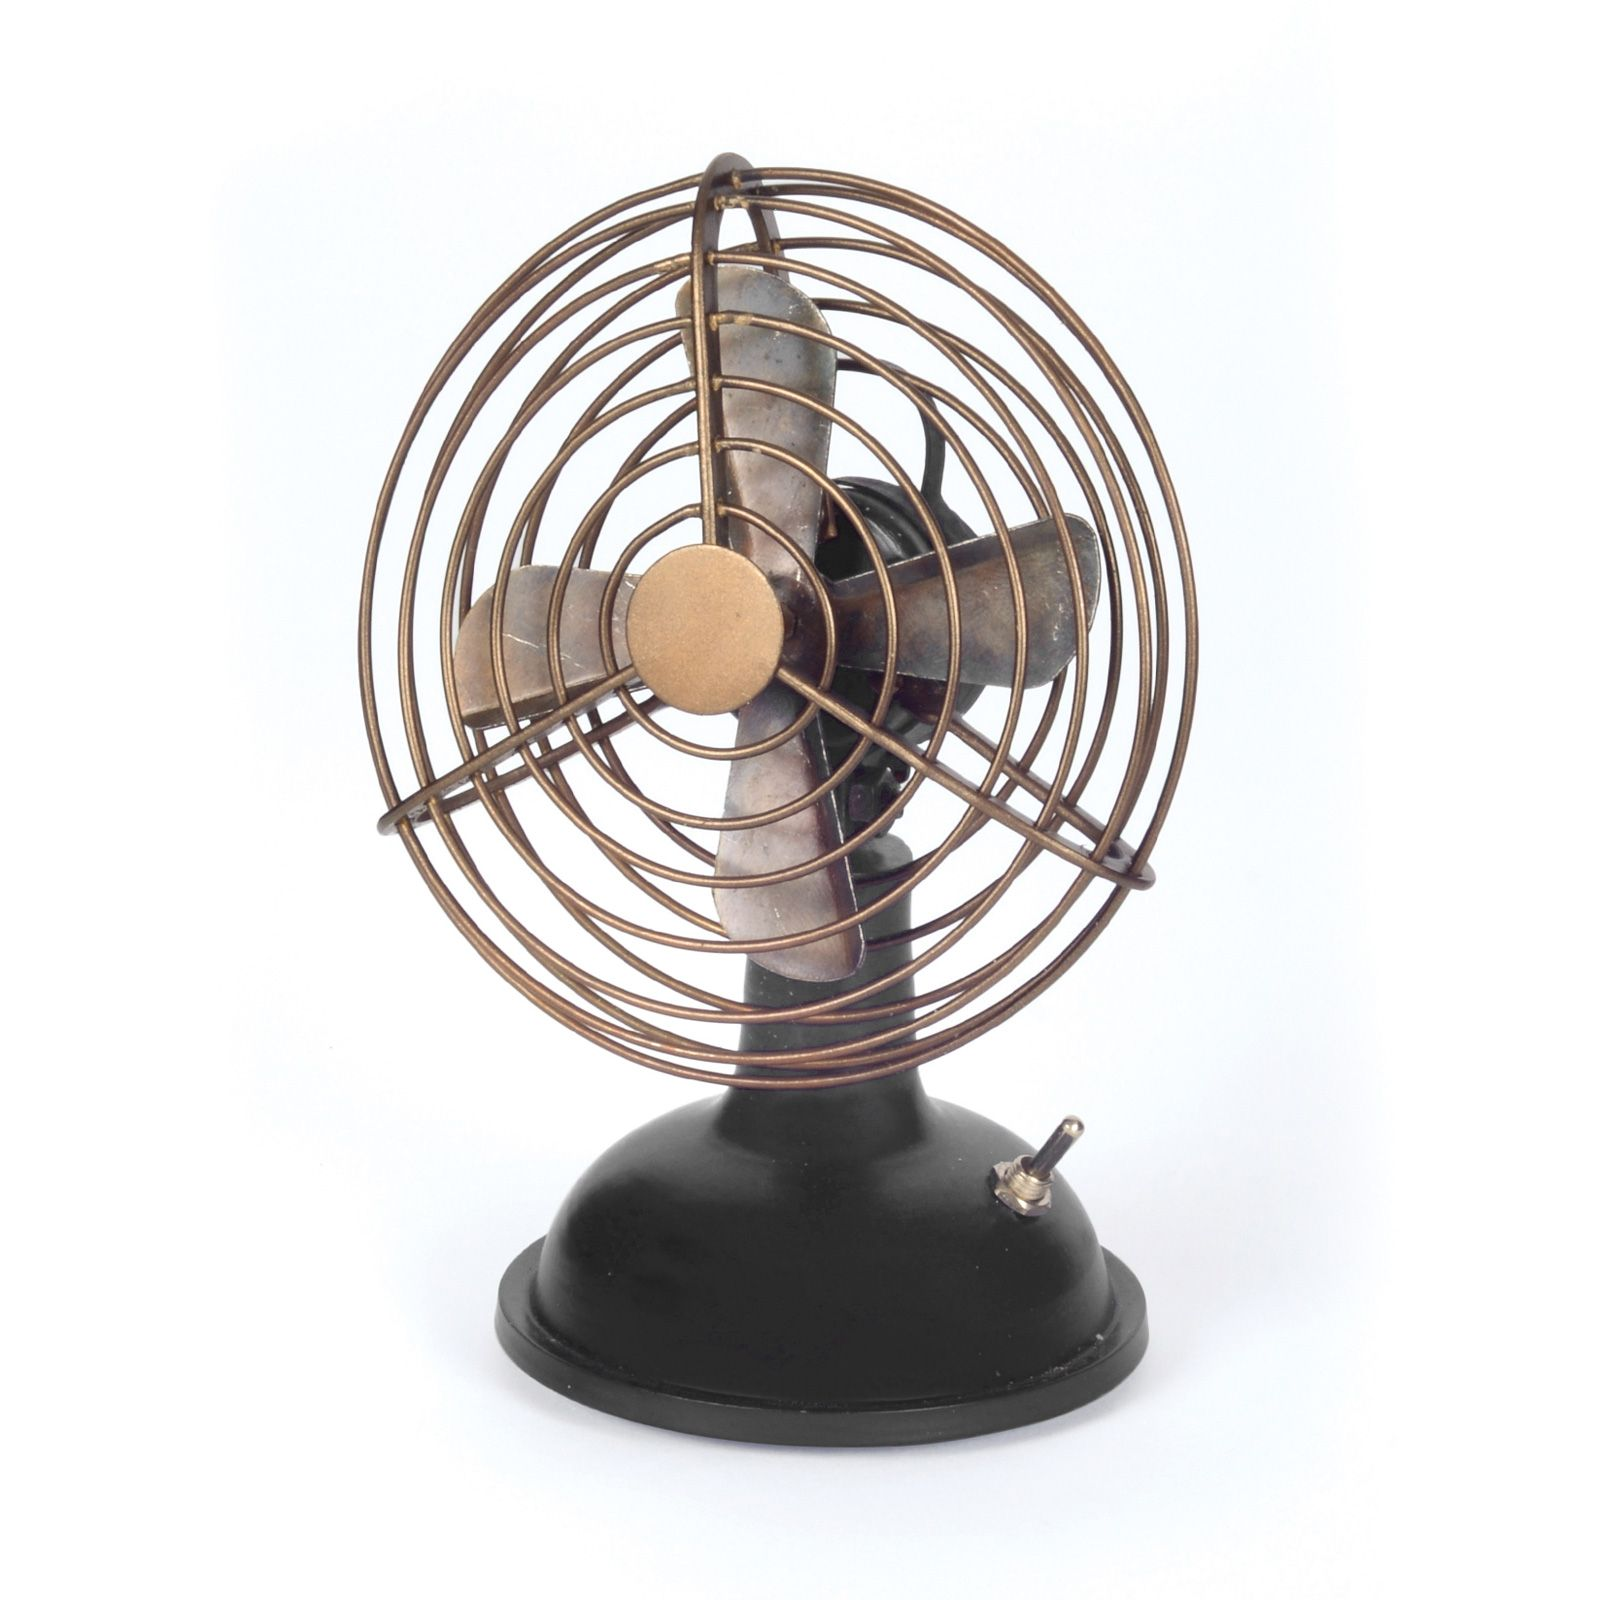 Not A Bad Little Vintage Looking Table Fan Maybe 1930s